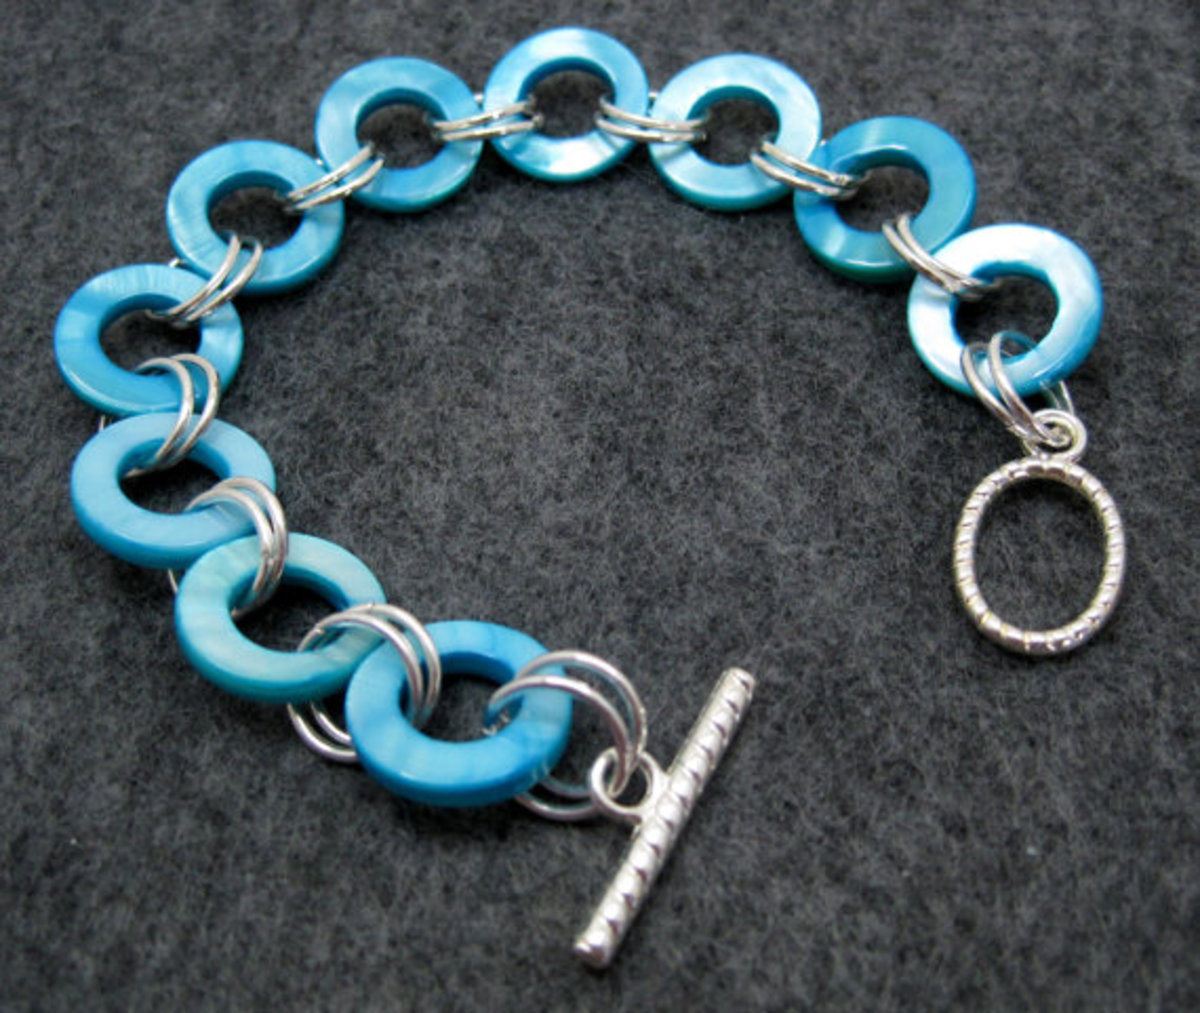 How to Make Bracelets: 10 Easy Tutorials